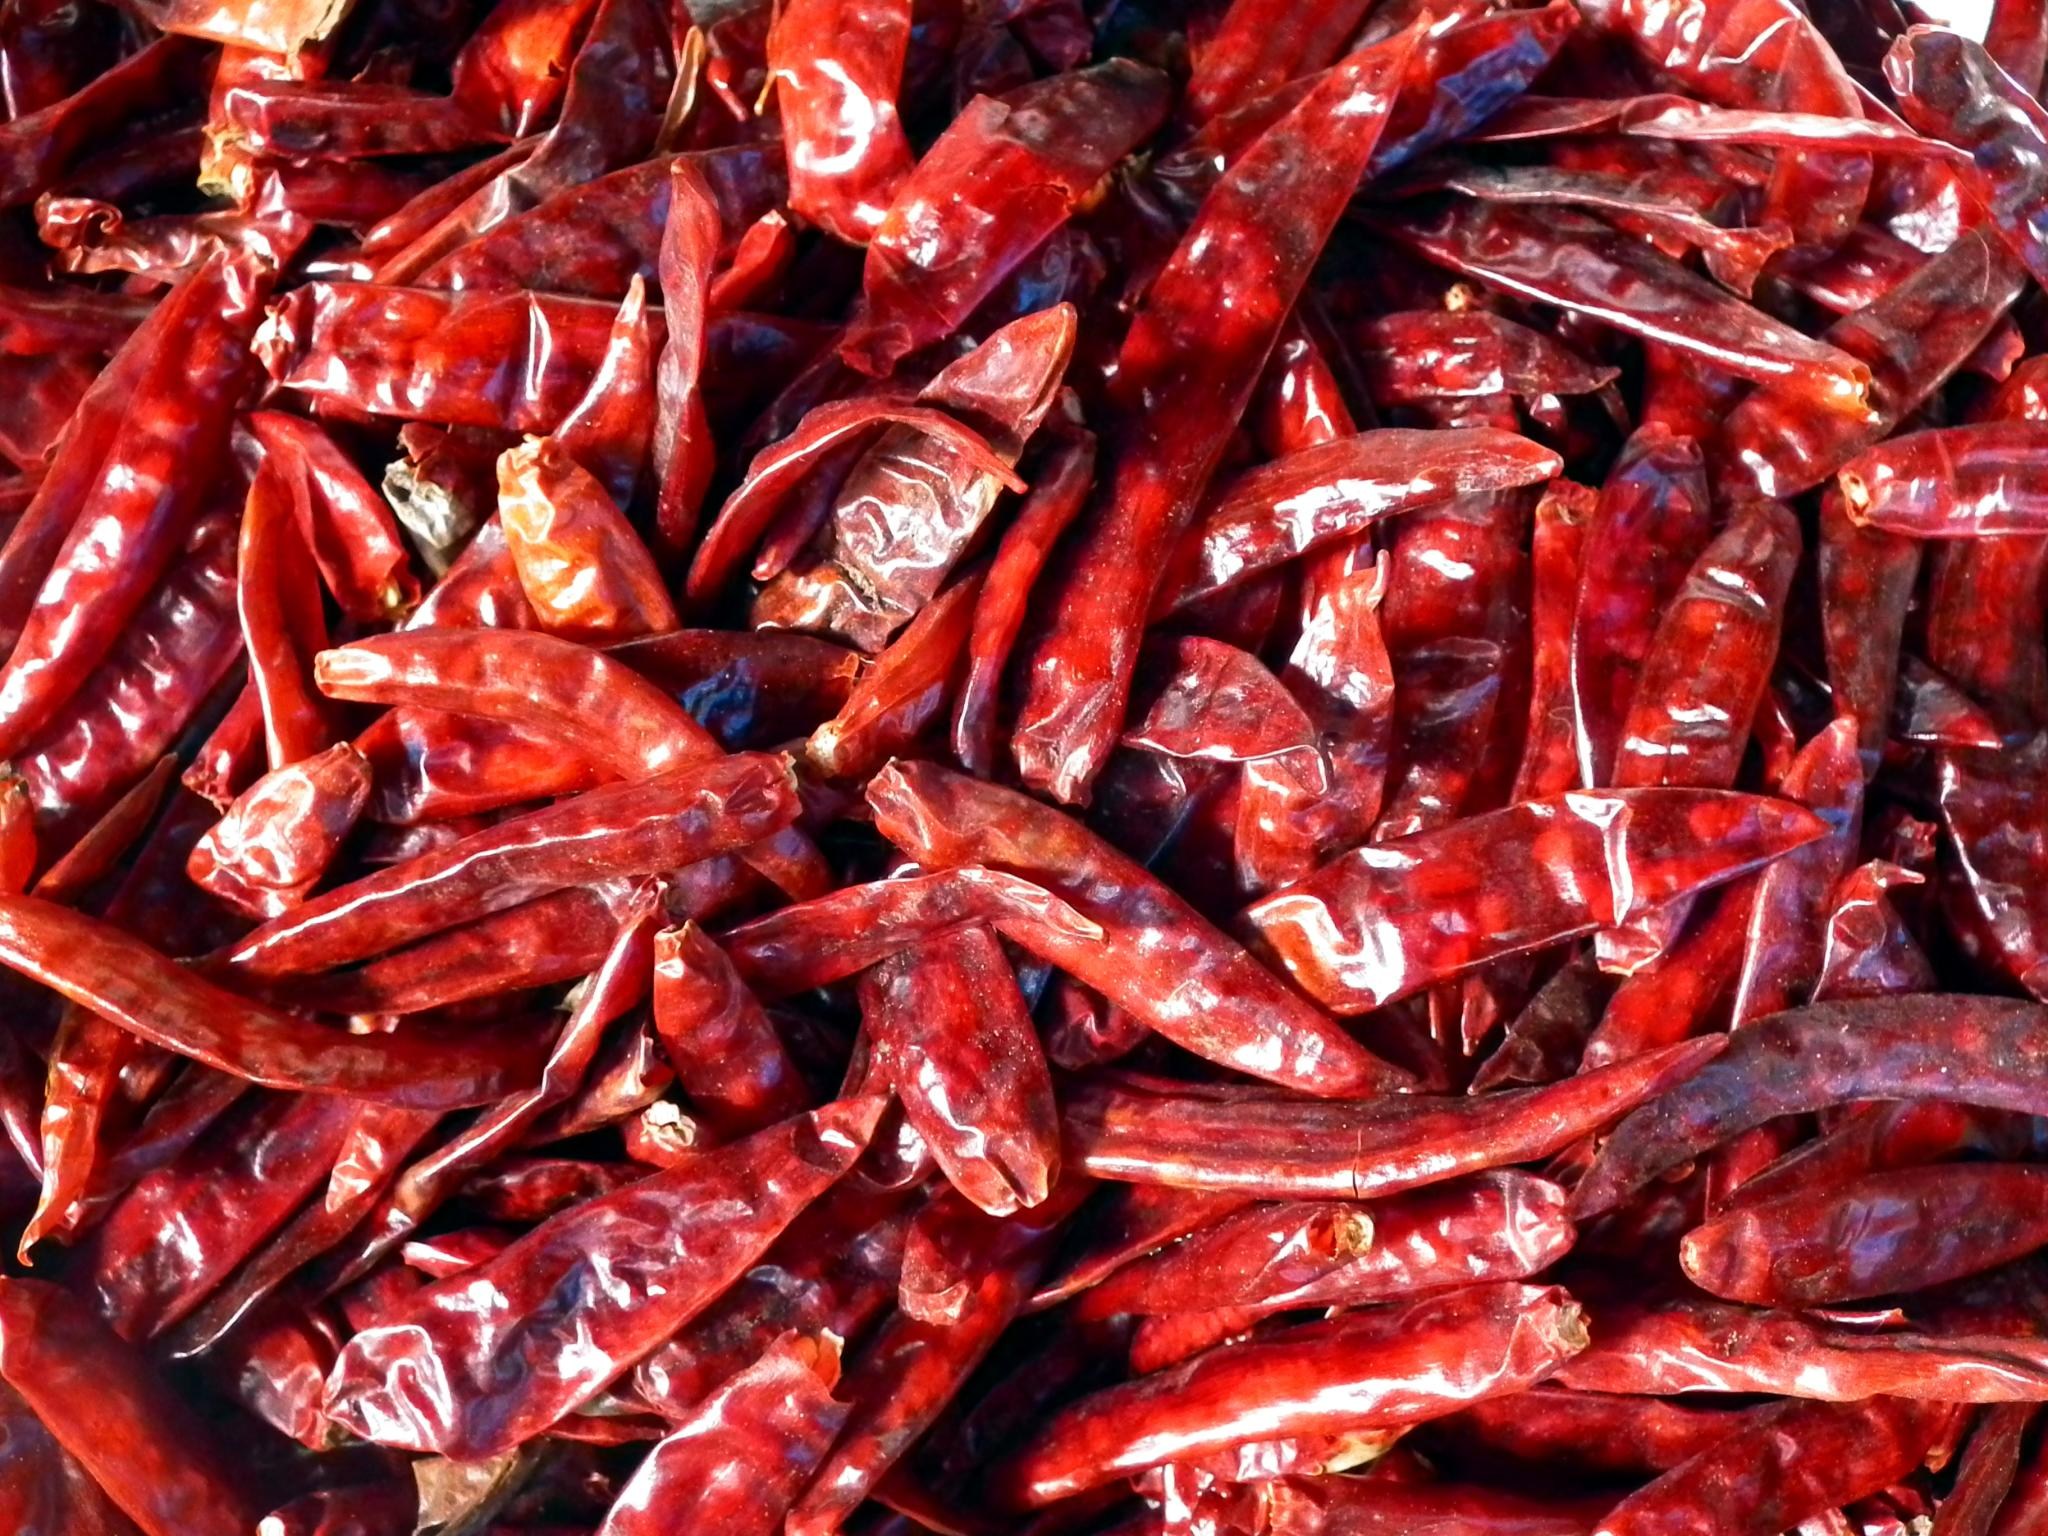 DRY RED CHILIES